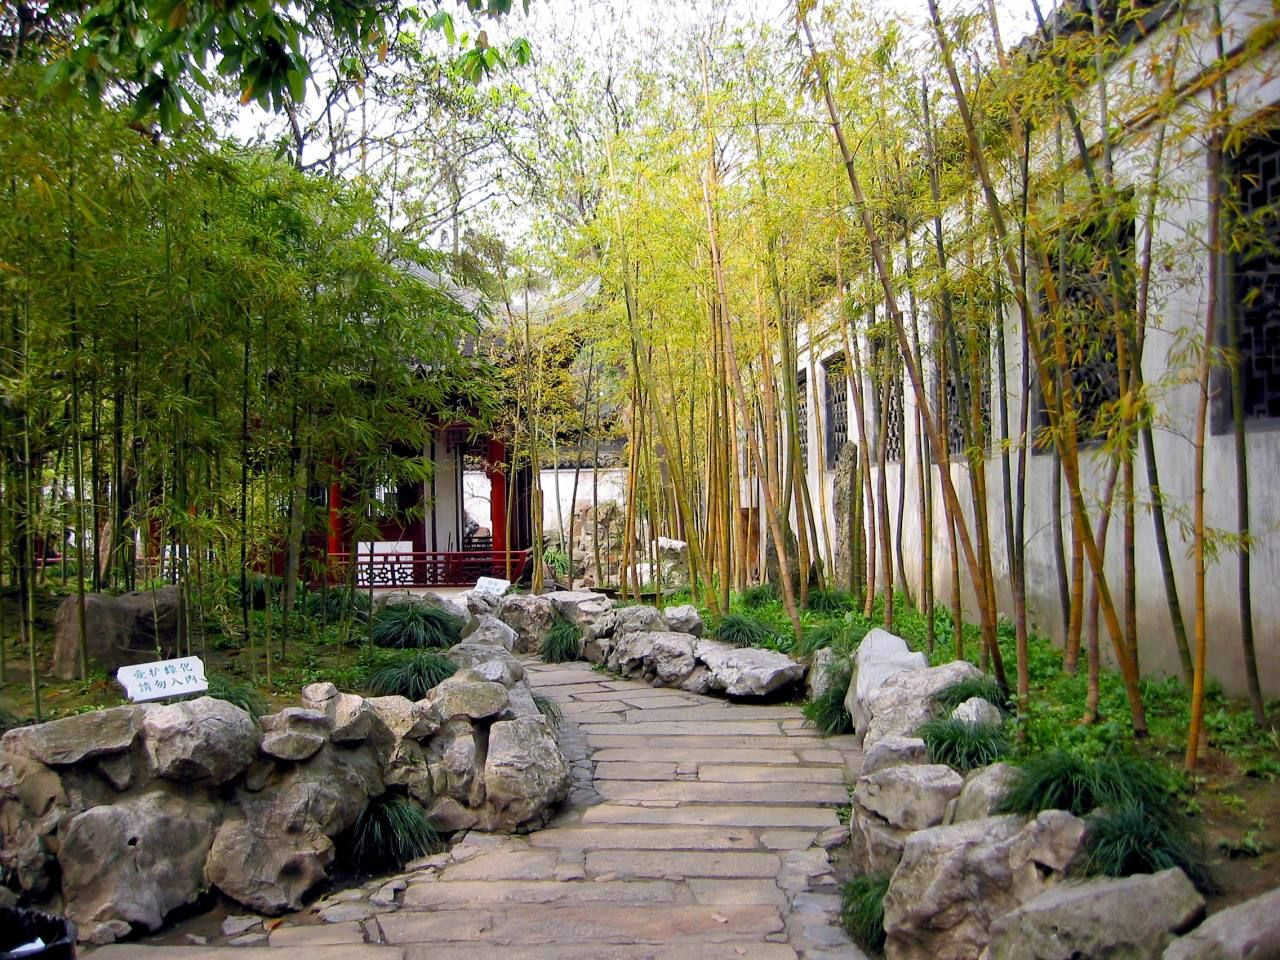 bamboo in the garden landscape design ideas stone path